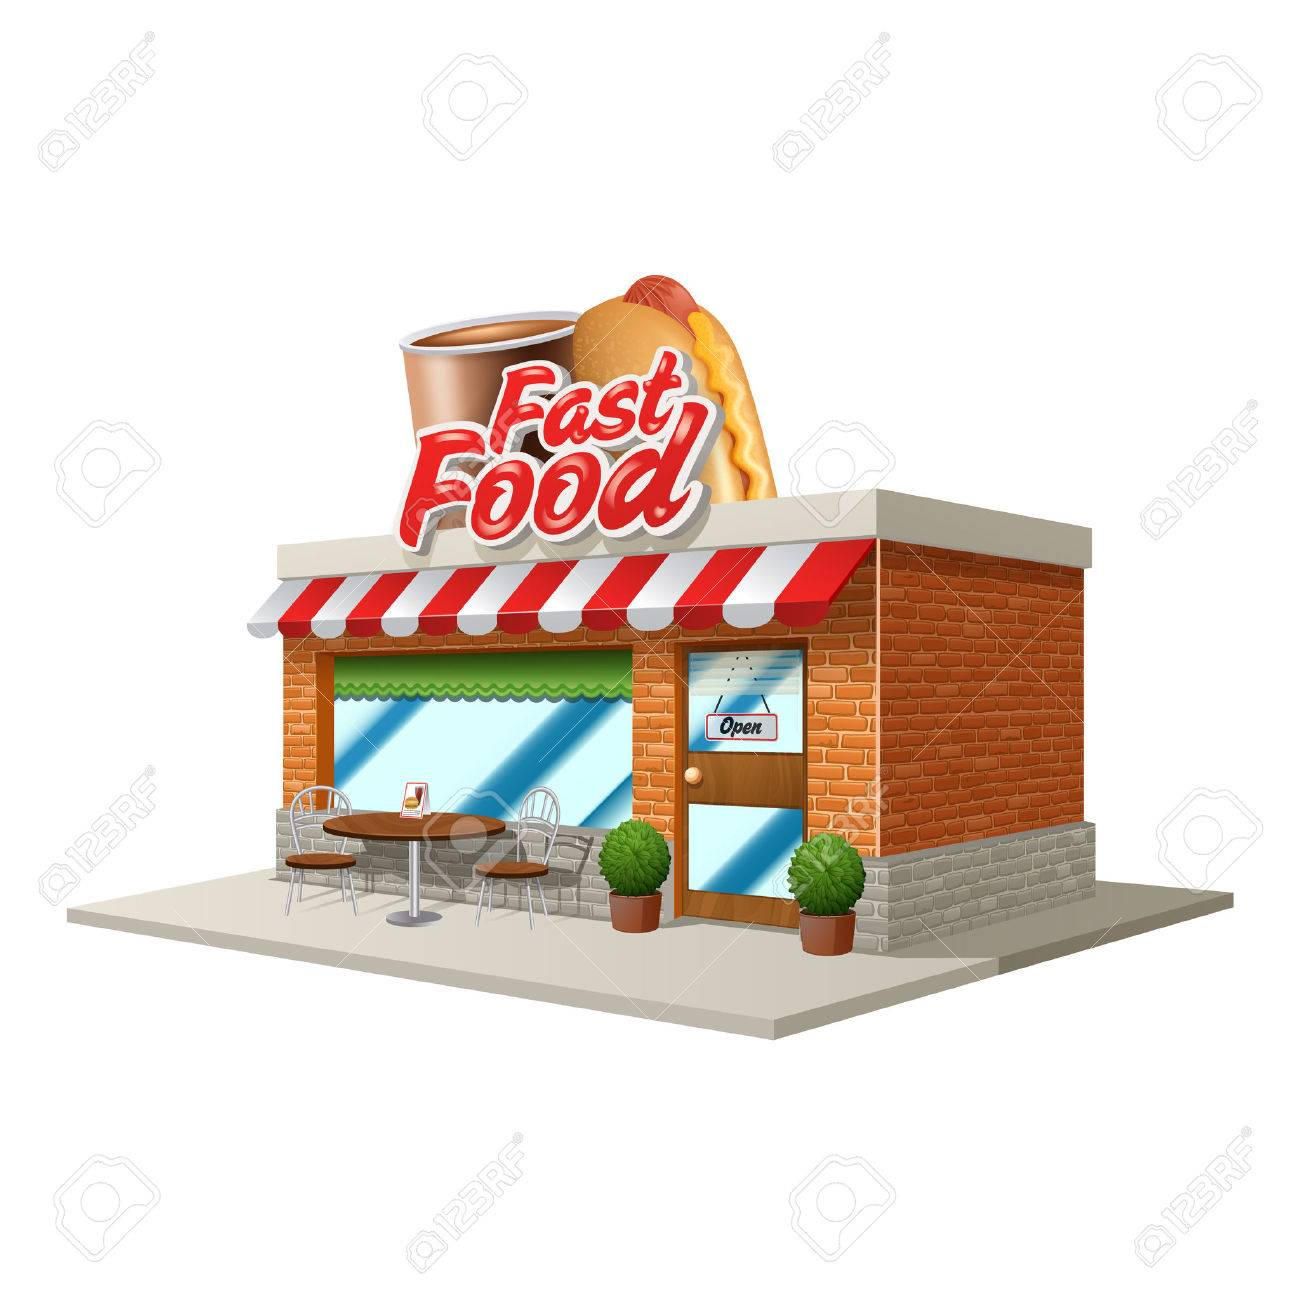 Building cartoon clipart restaurant building and restaurant building - 3d Fast Food Restaurant Or Cafe Building Isolated On White Background Vector Illustration Stock Vector